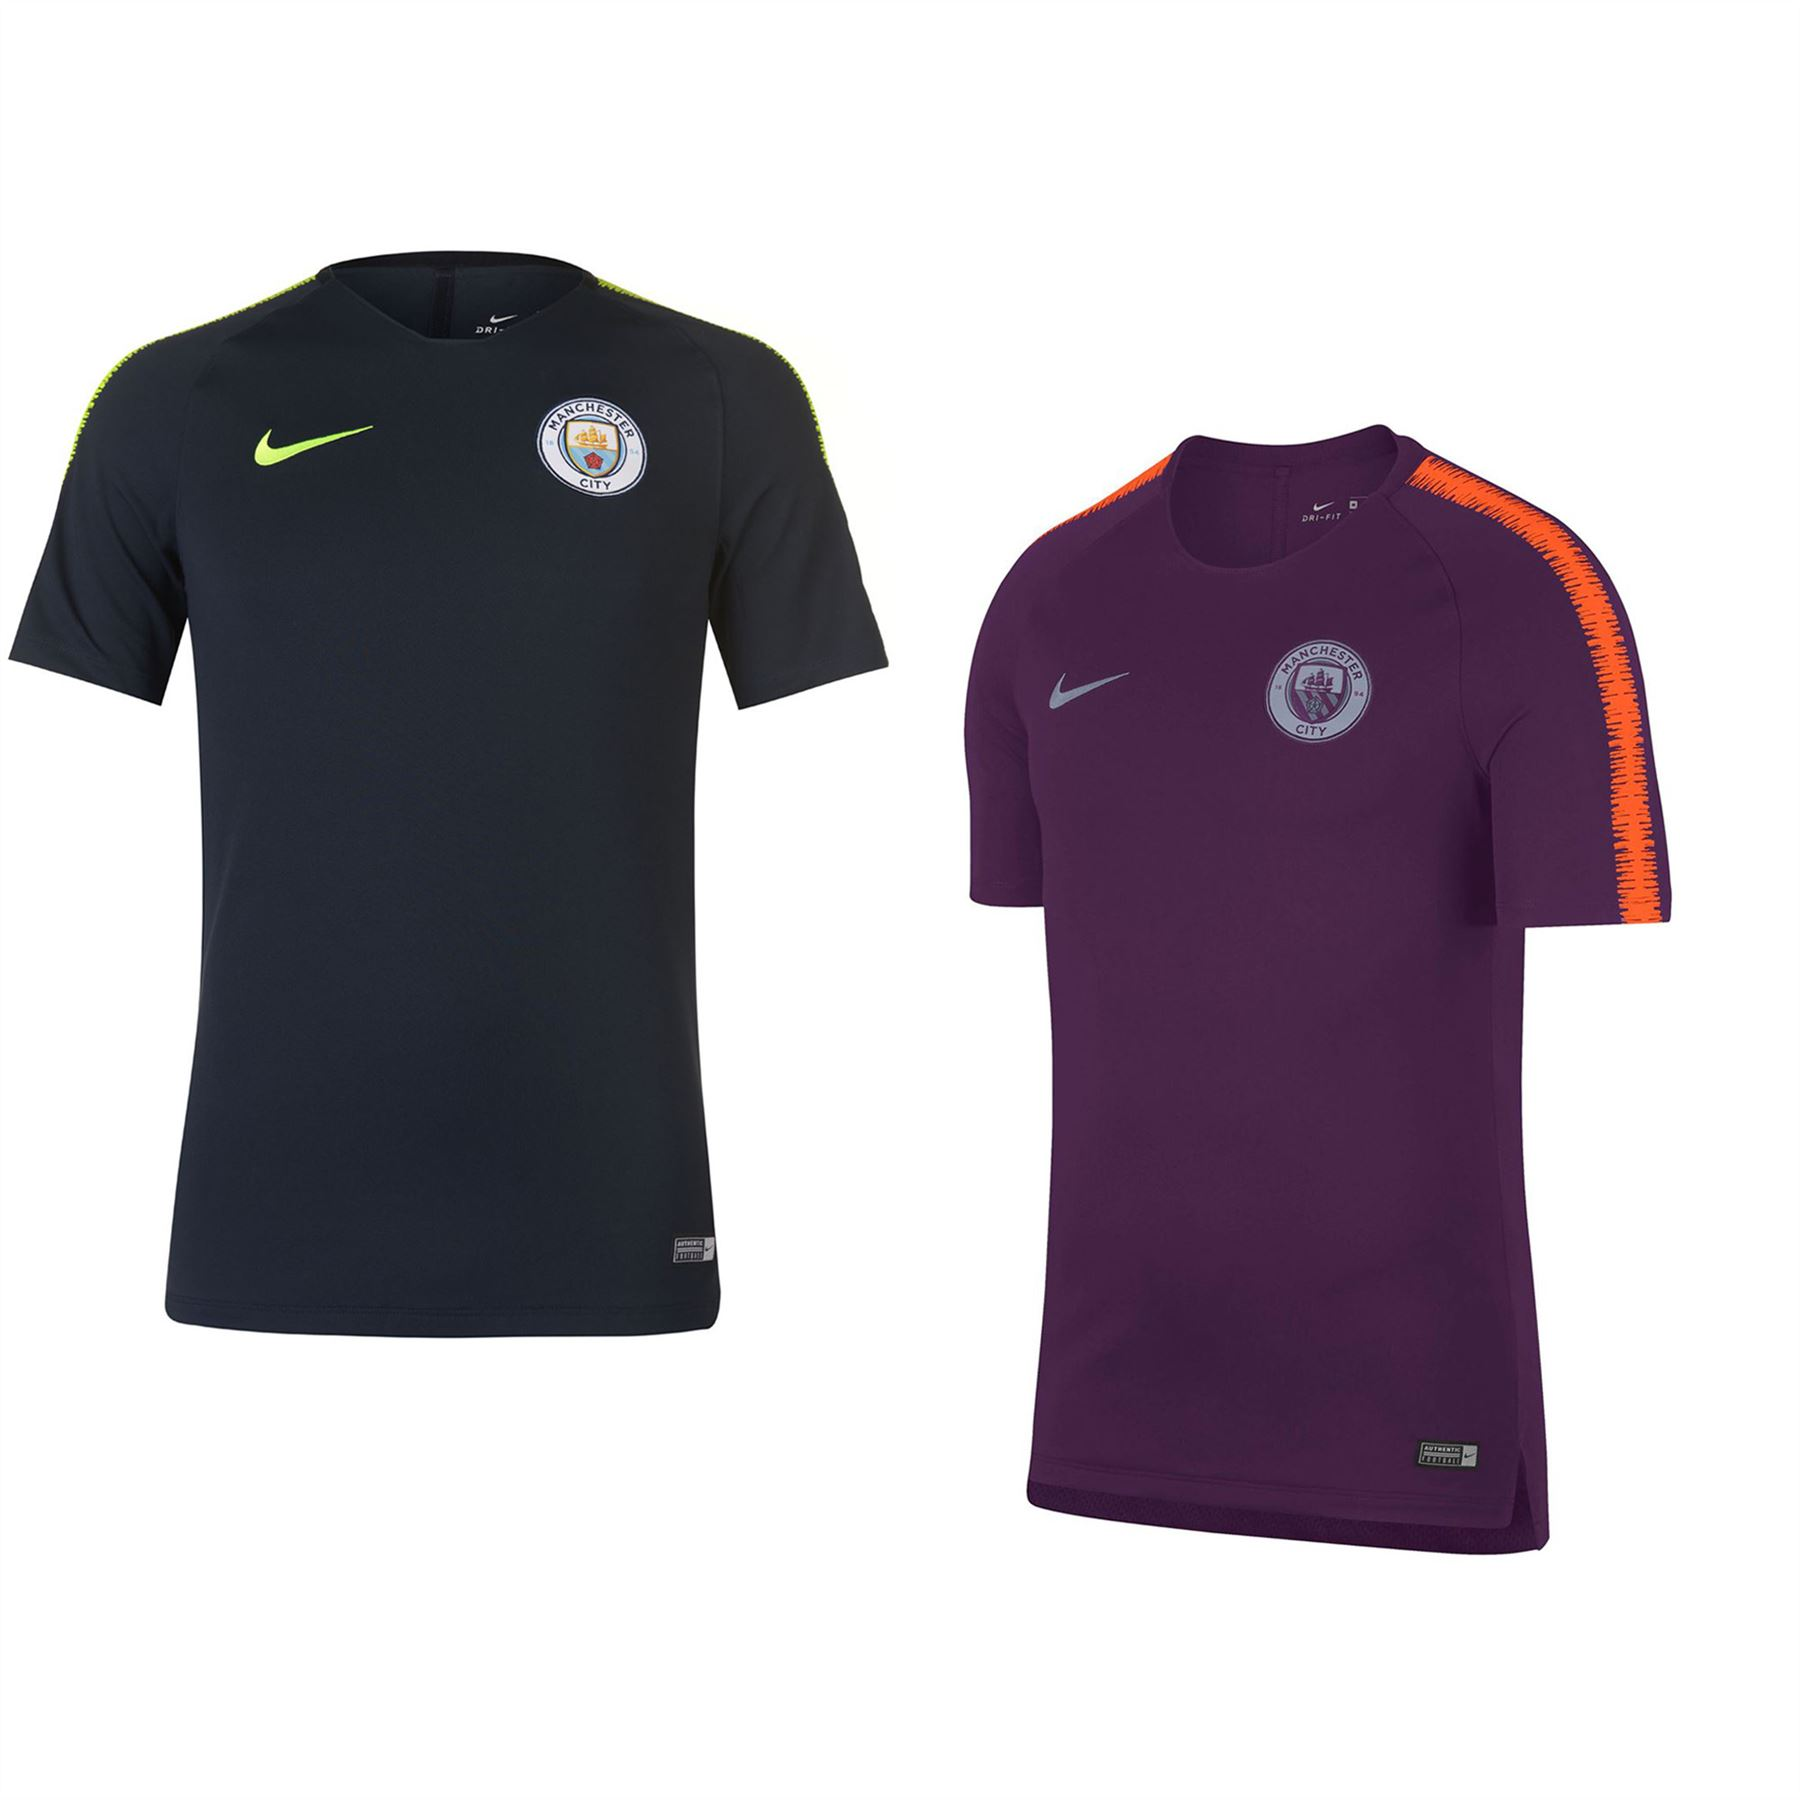 b7802ebeee Details about Nike Manchester City Squad T-Shirt 2018 2019 Mens Football  Soccer Top Tee